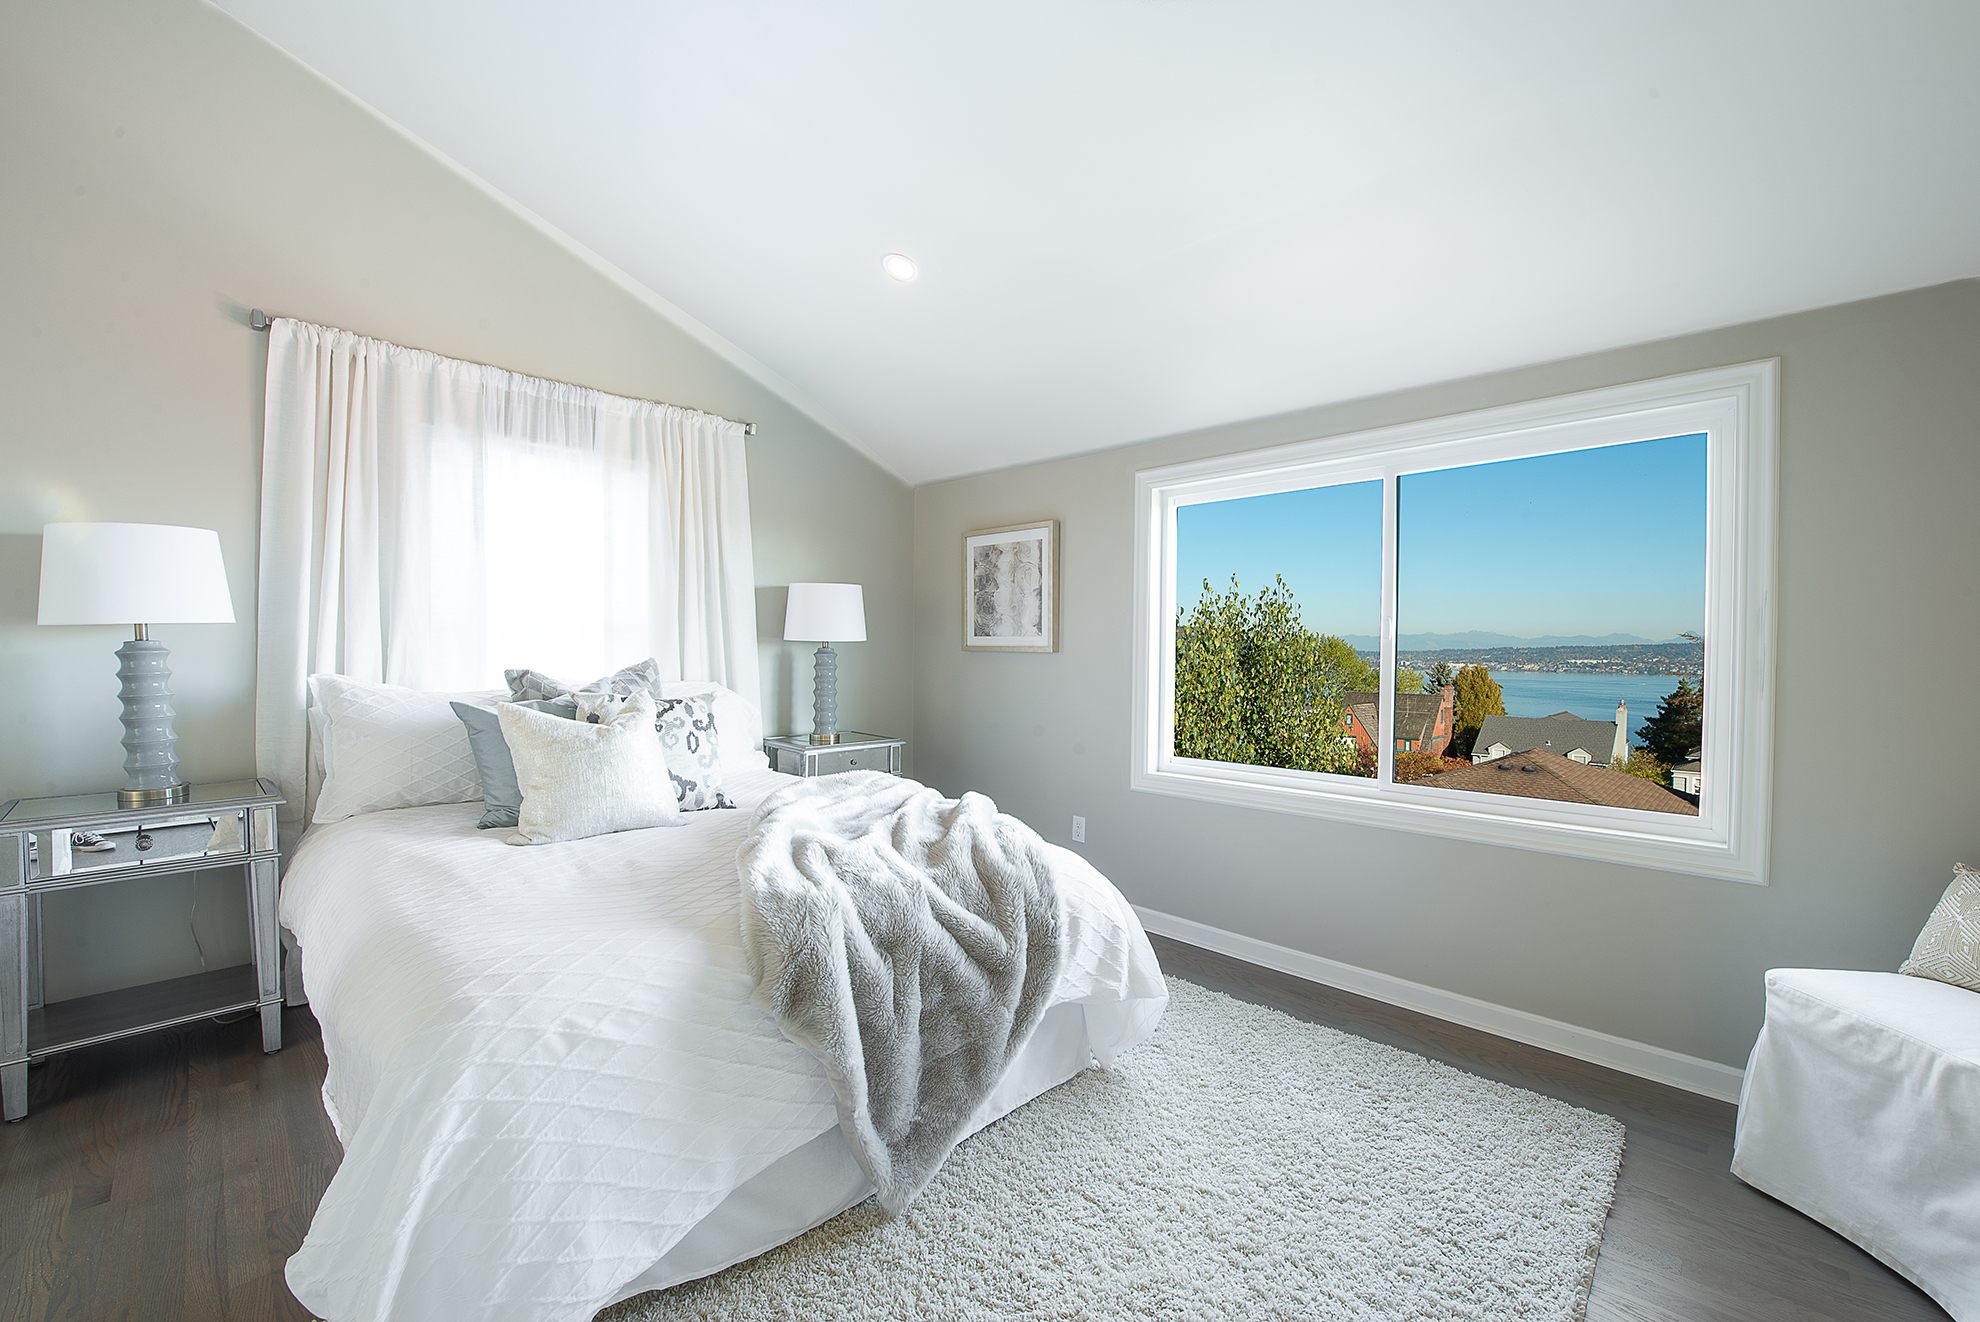 This bedroom feels twice the size with the addition of vaulted ceilings.